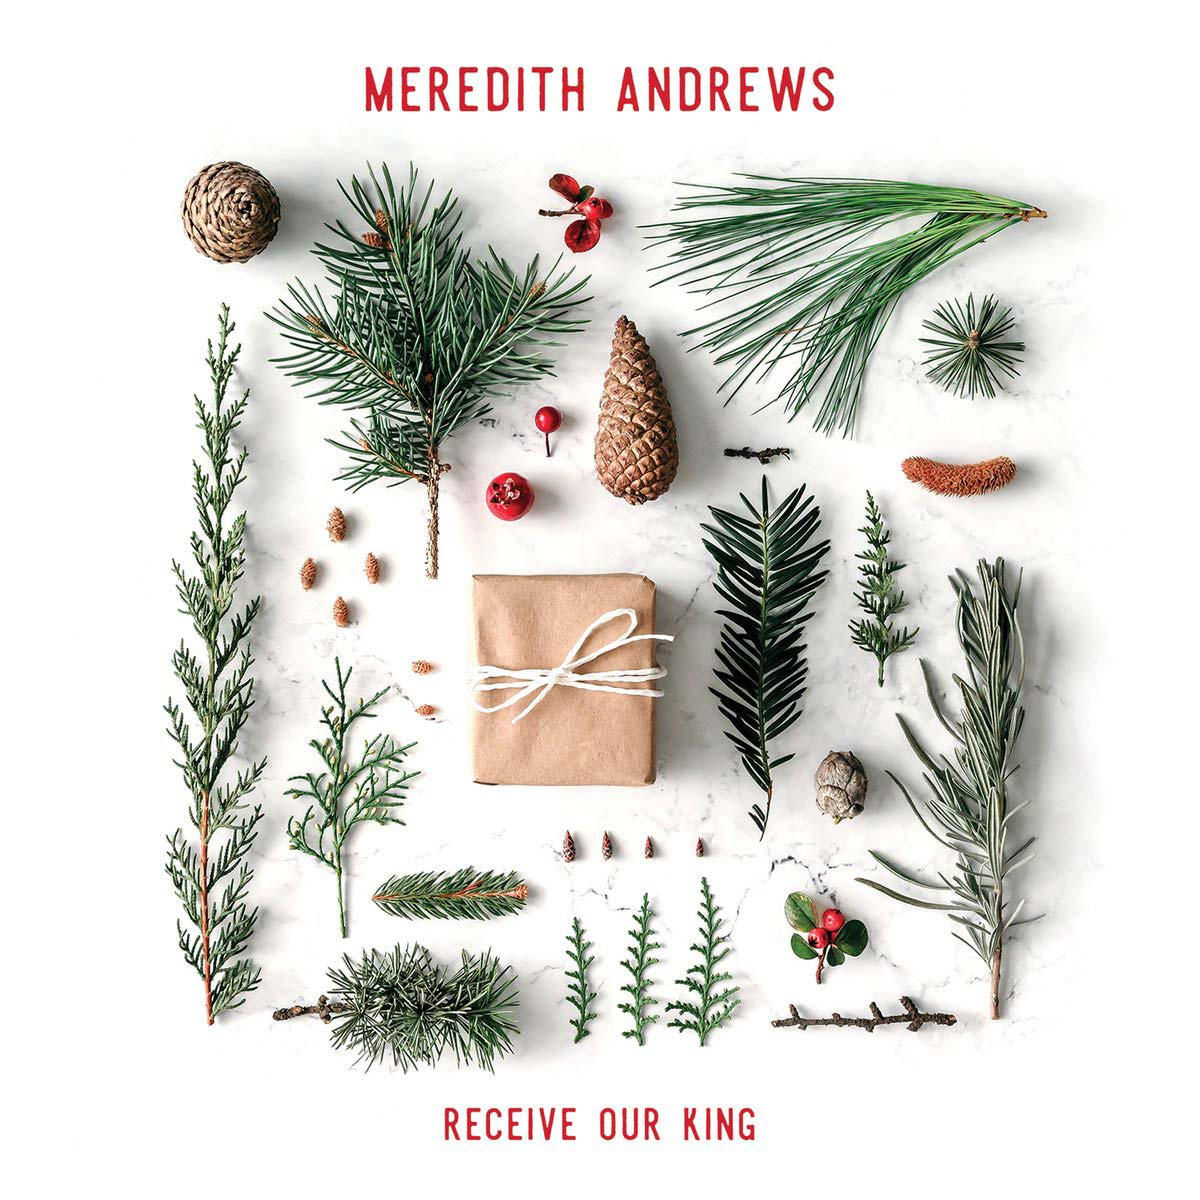 Meredith Andrews Labor of Love Album